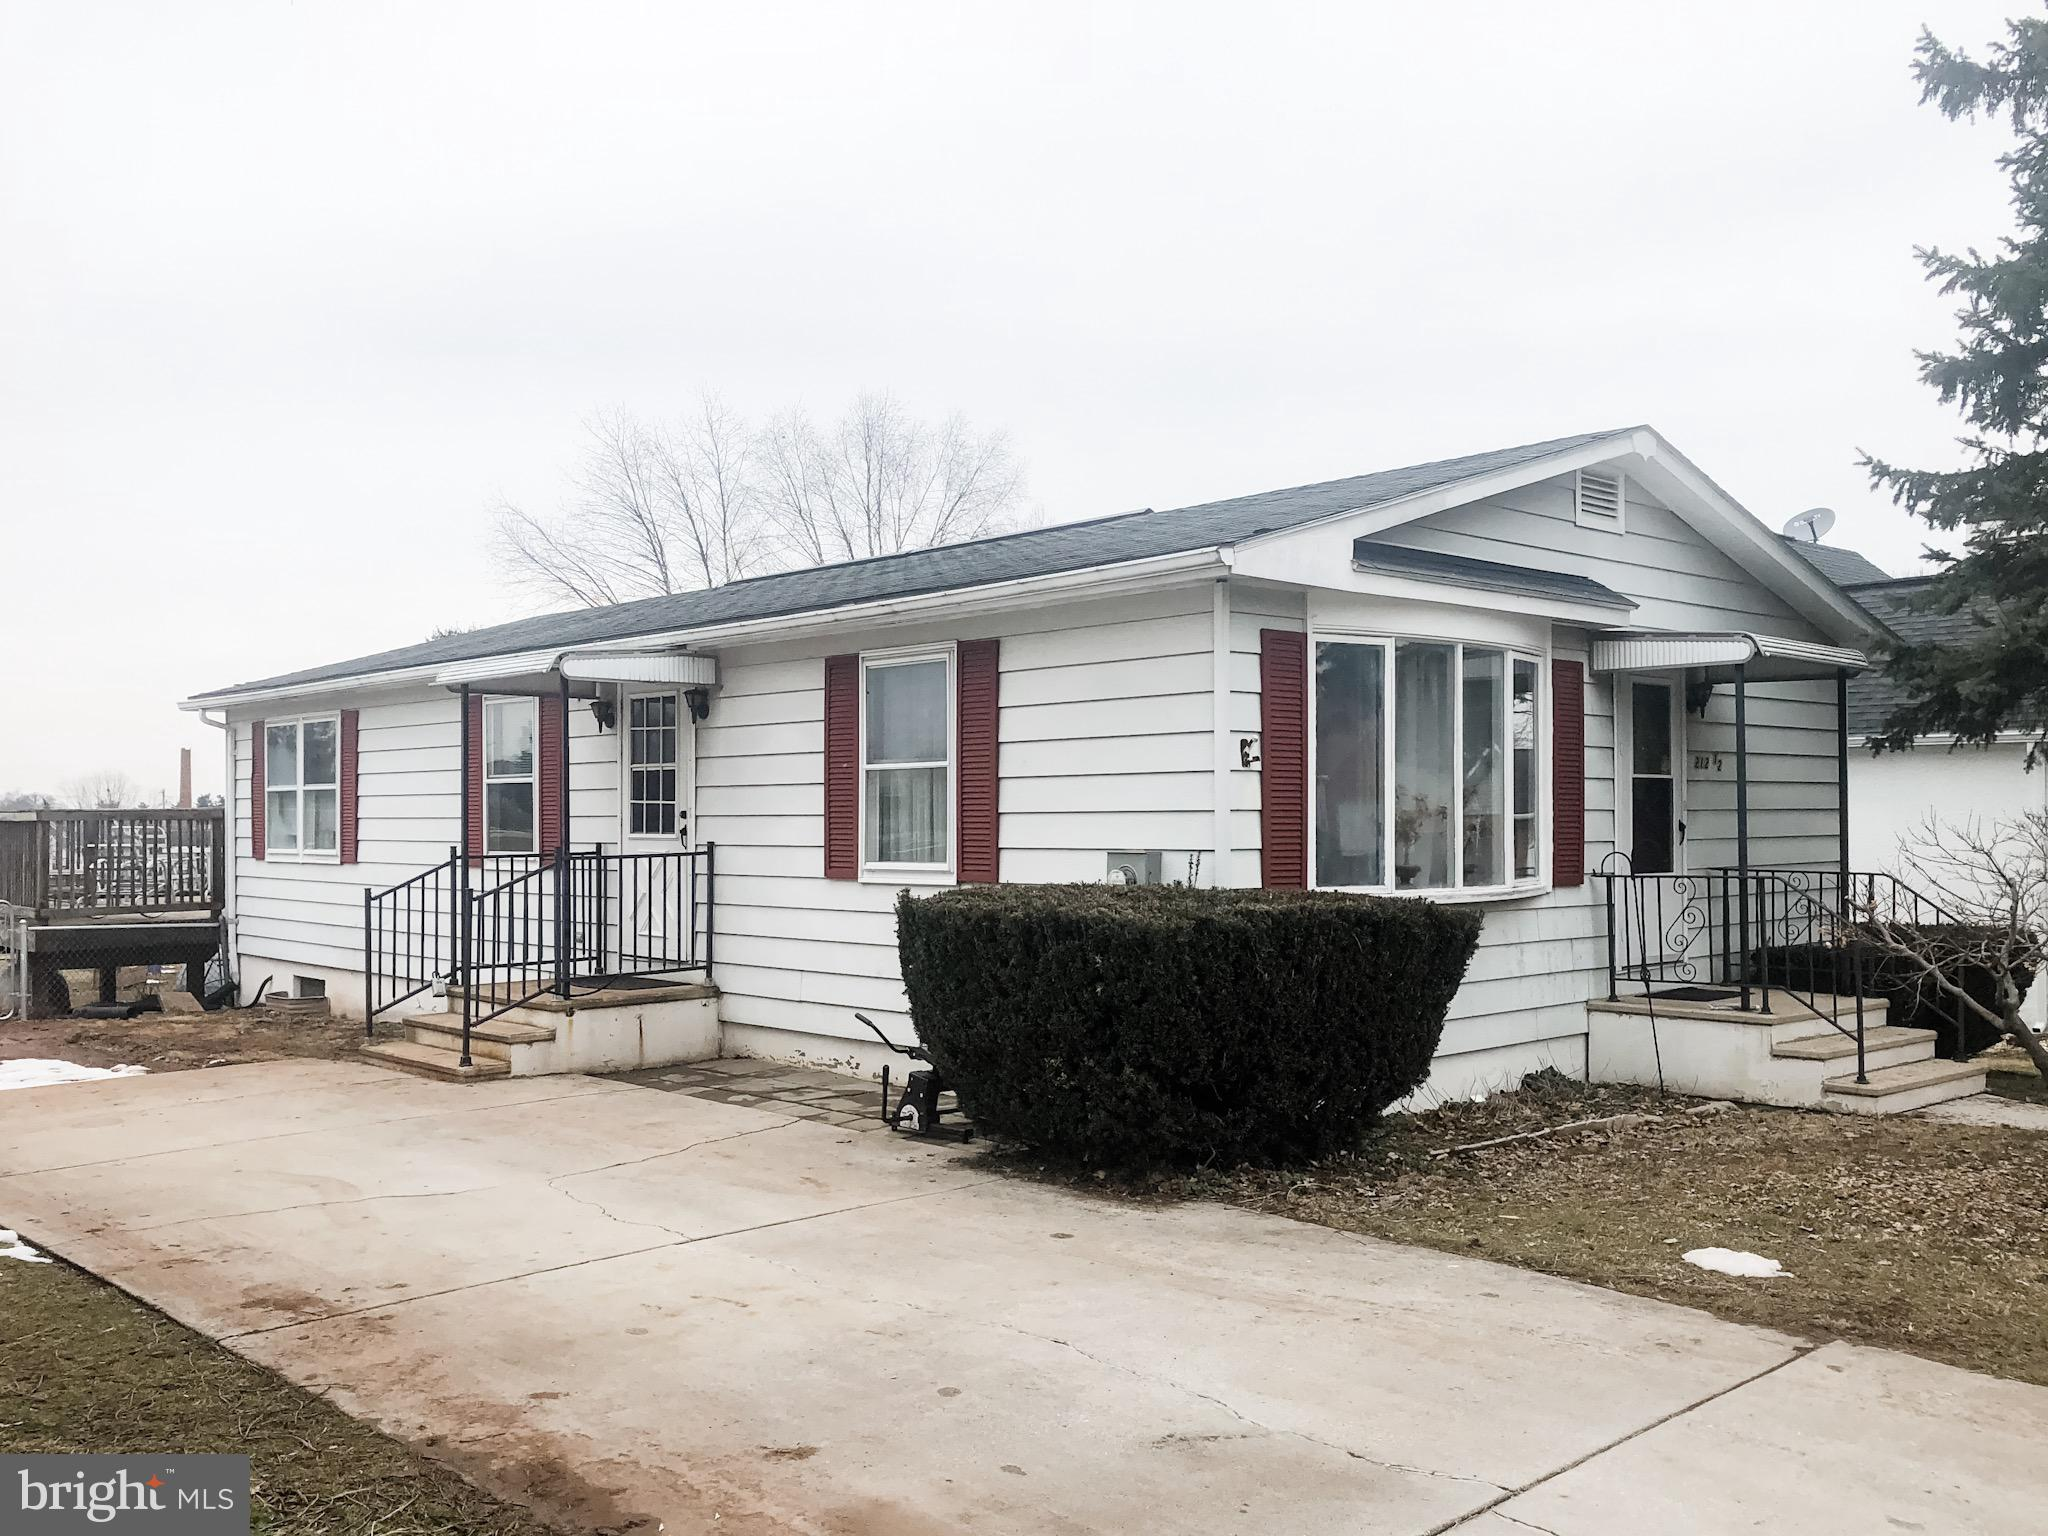 212 1/2 CARROLL HEIGHTS ROAD, TANEYTOWN, MD 21787